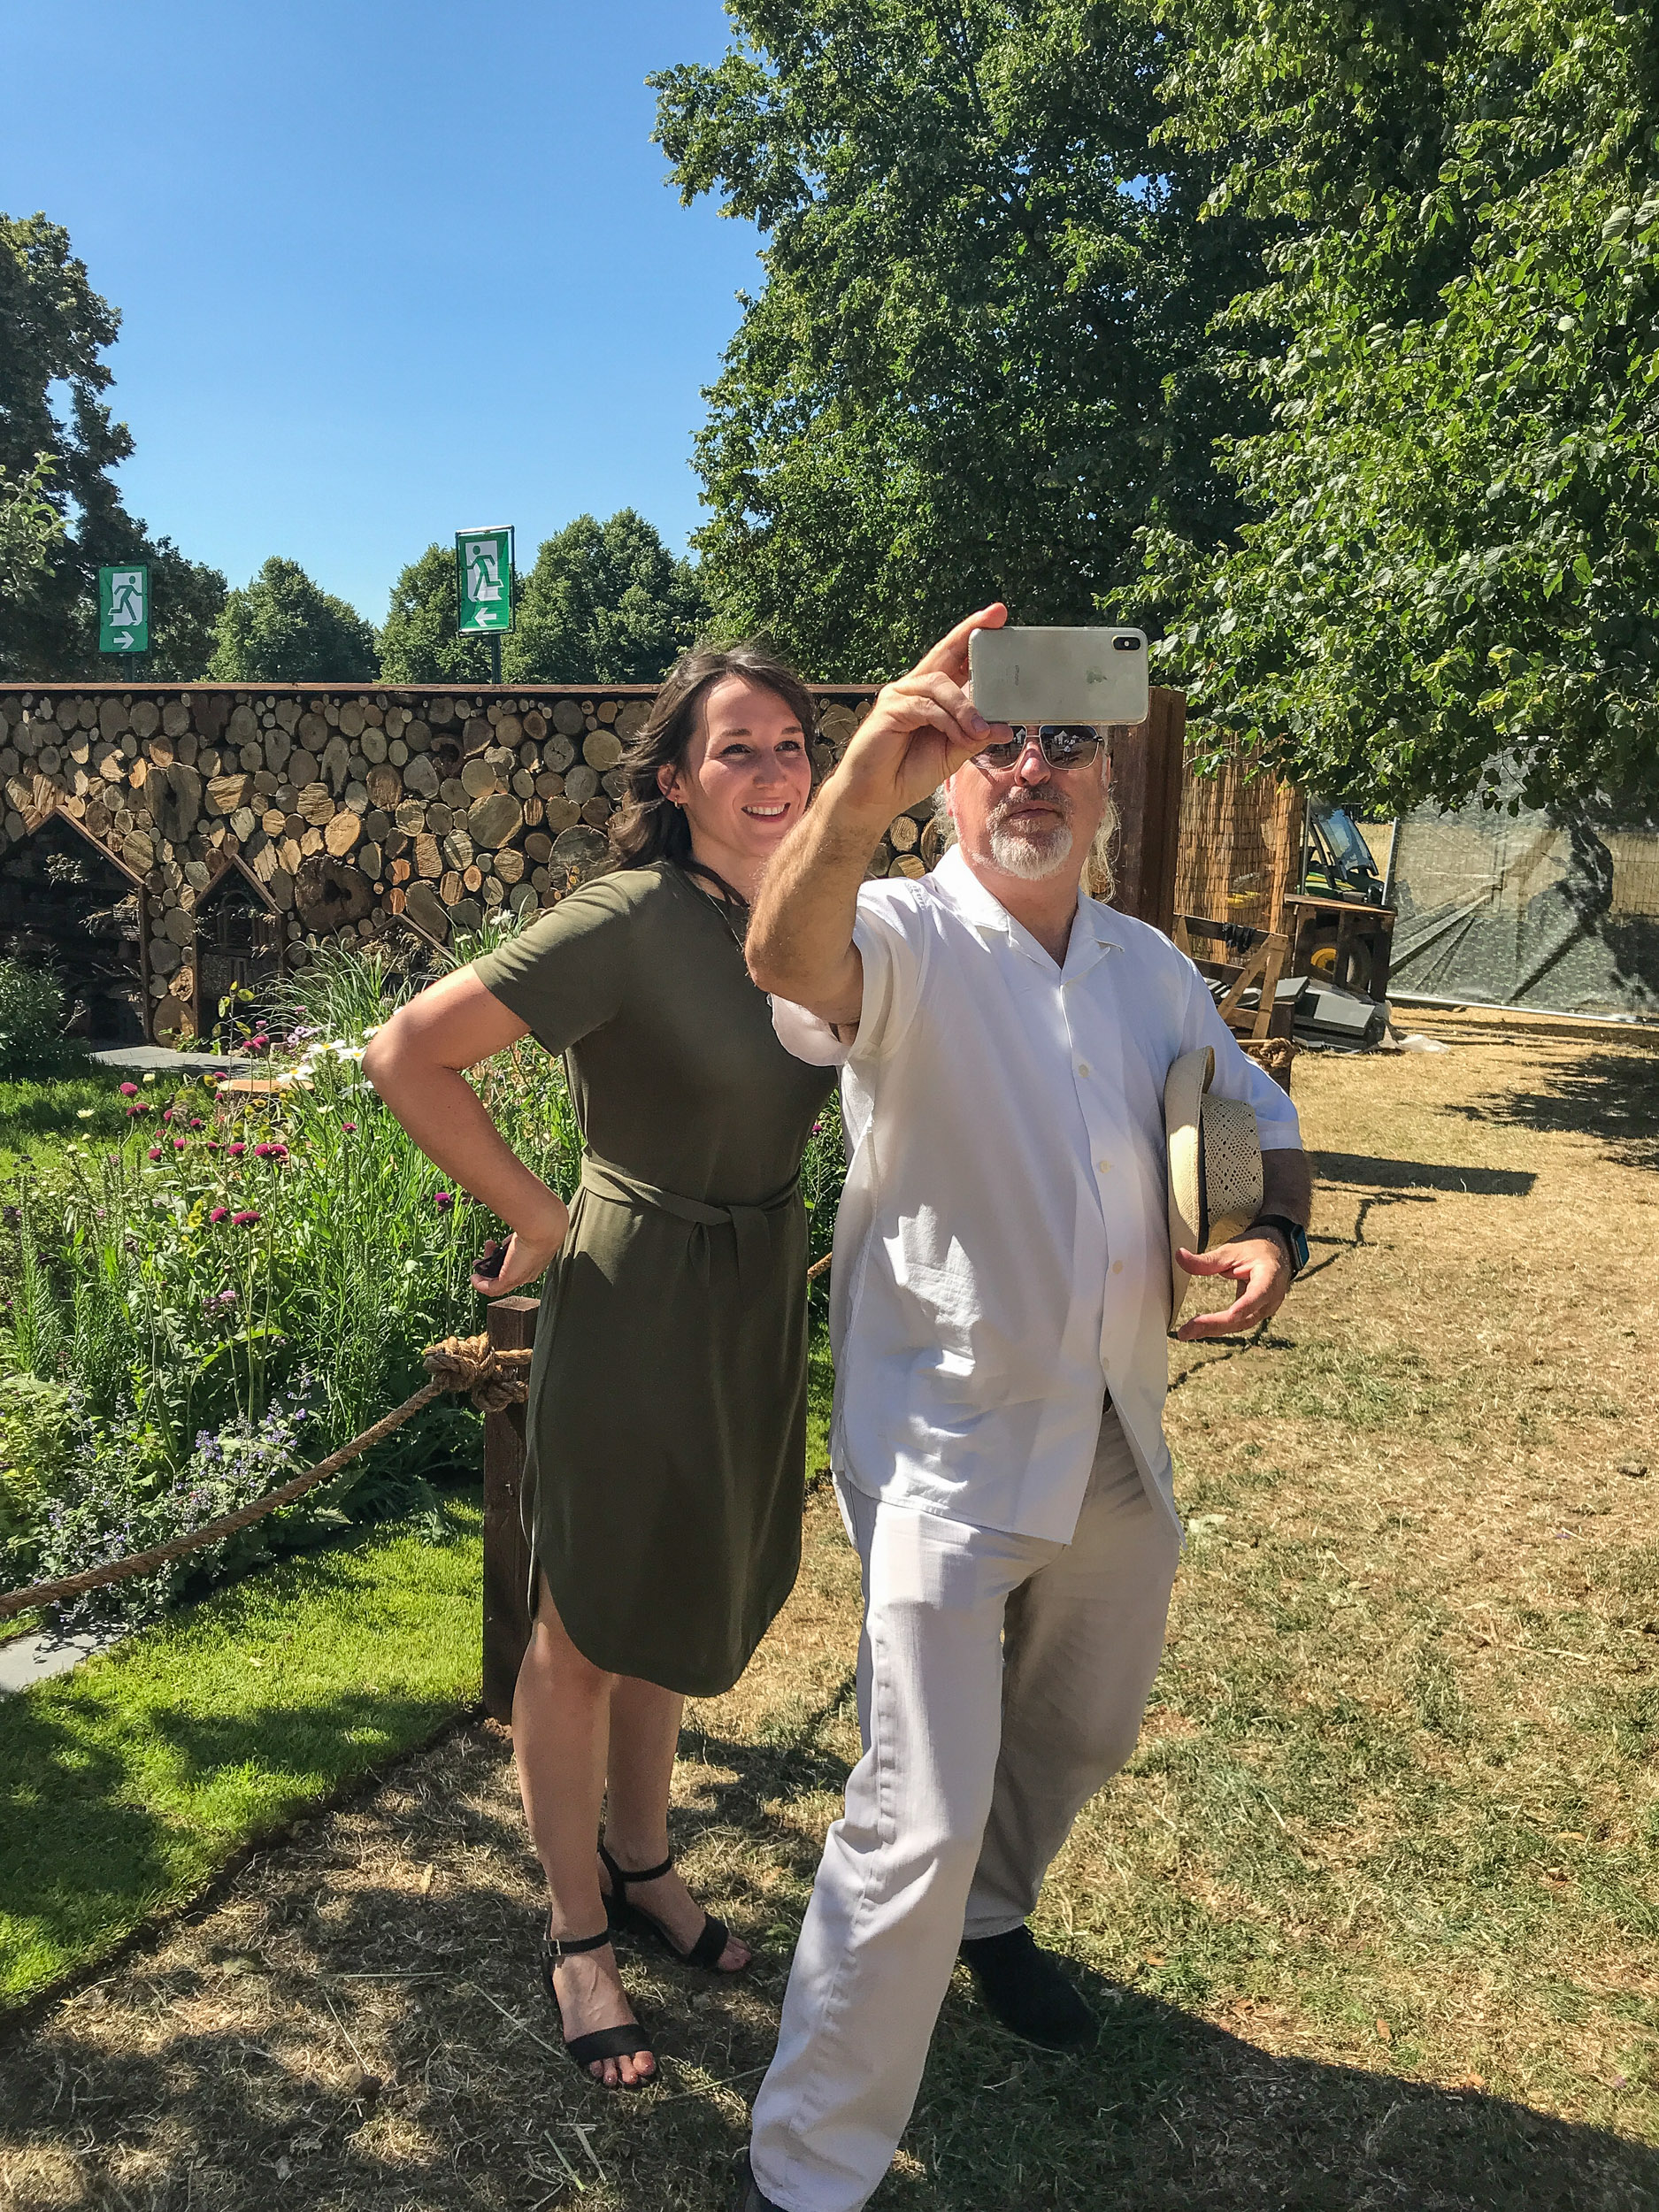 Bill Bailey at Hampton Court Flower Show grabbing a selfie with designer Lilly Gomm